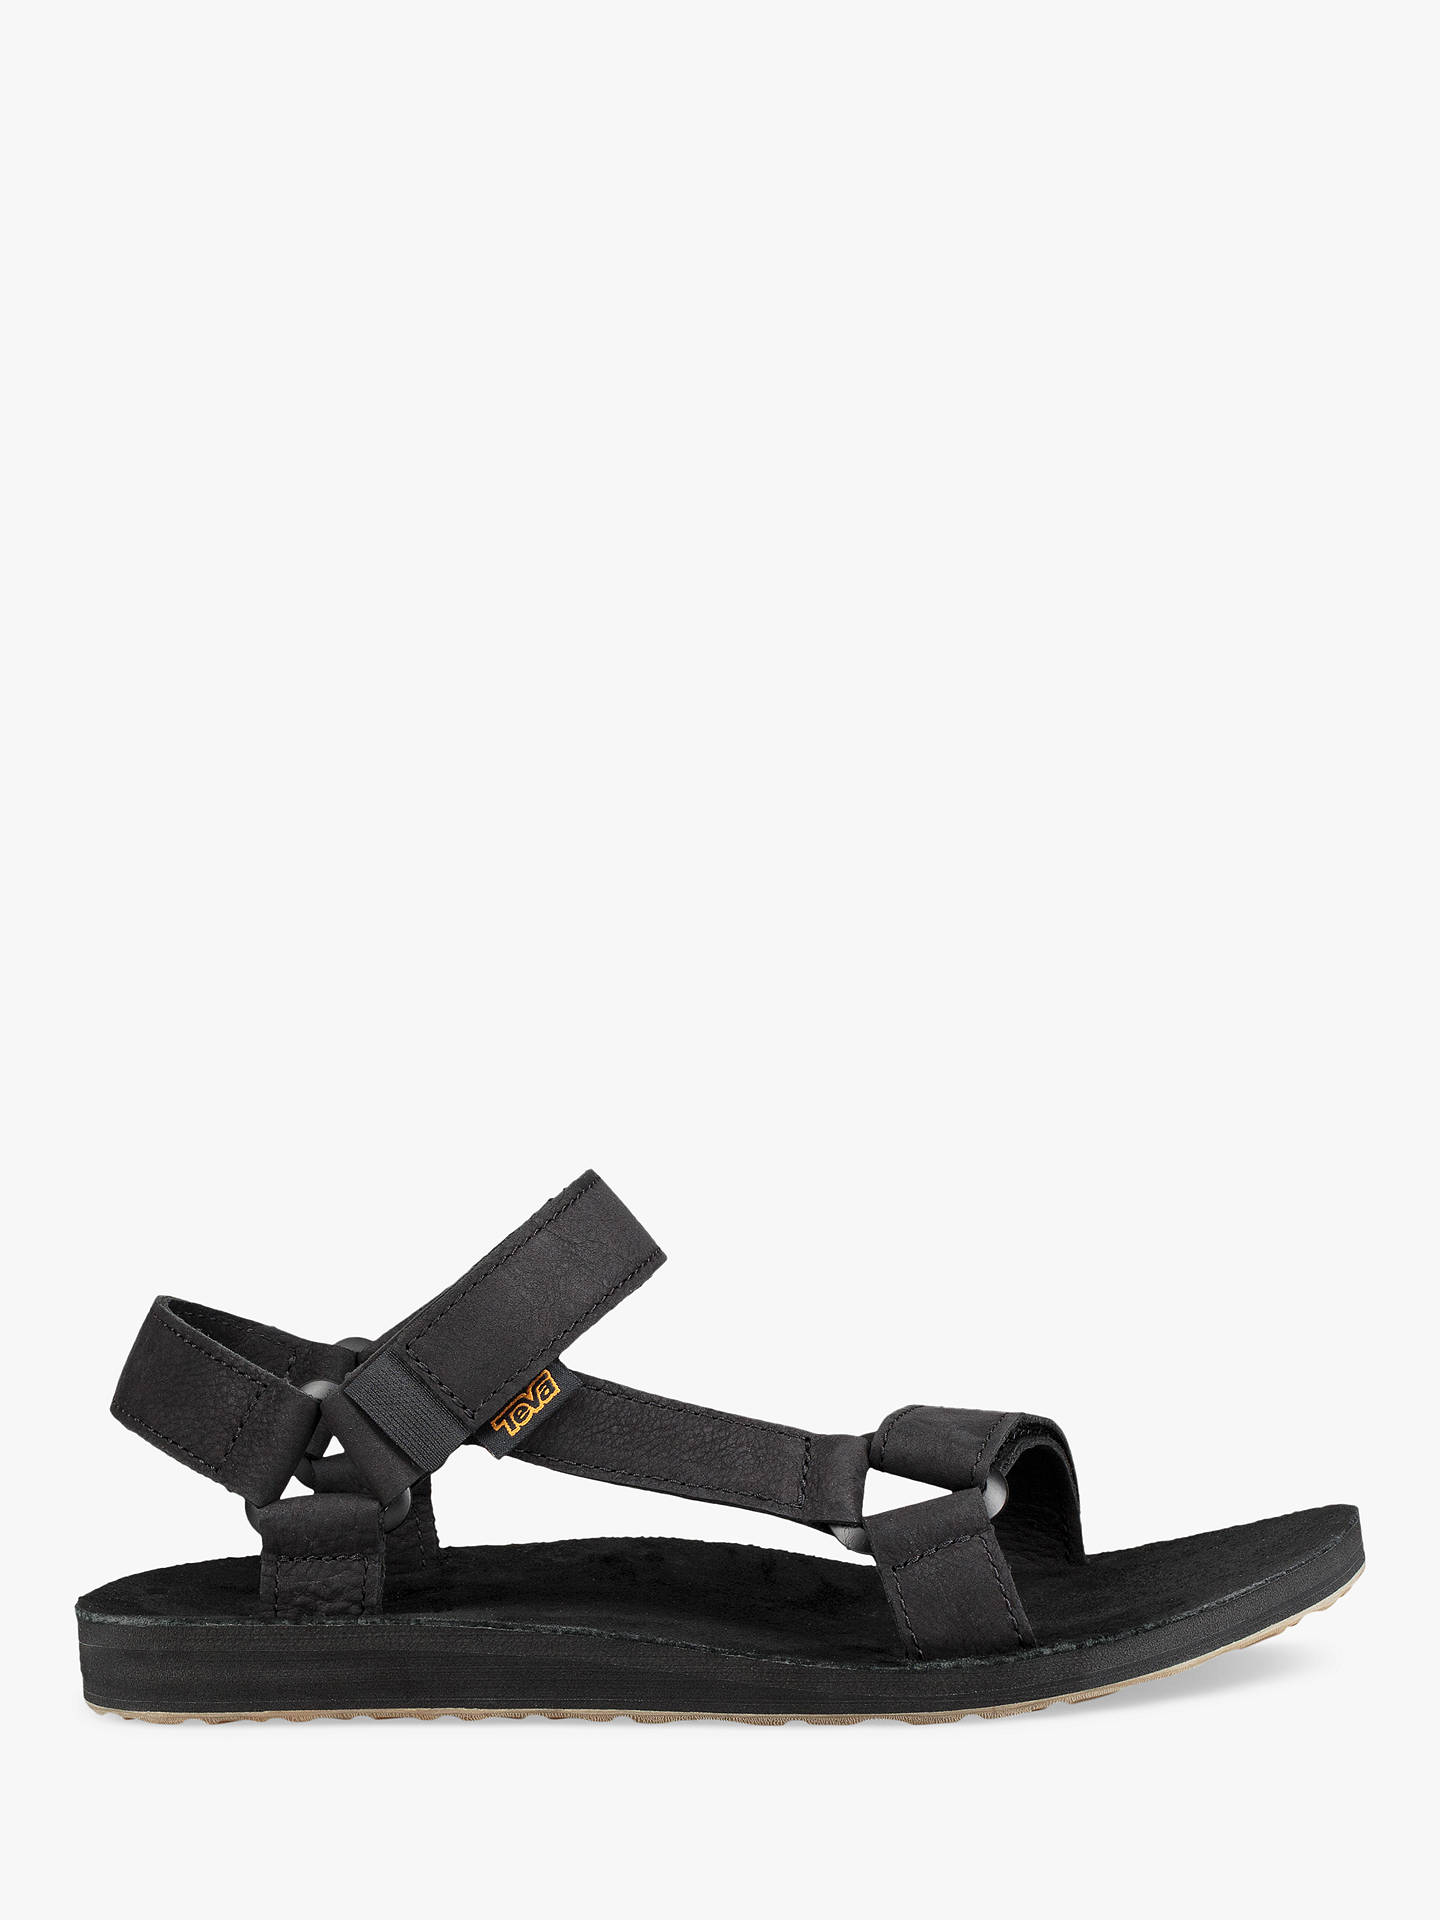 800f086a5 Teva Original Universal Leather Sandals at John Lewis   Partners